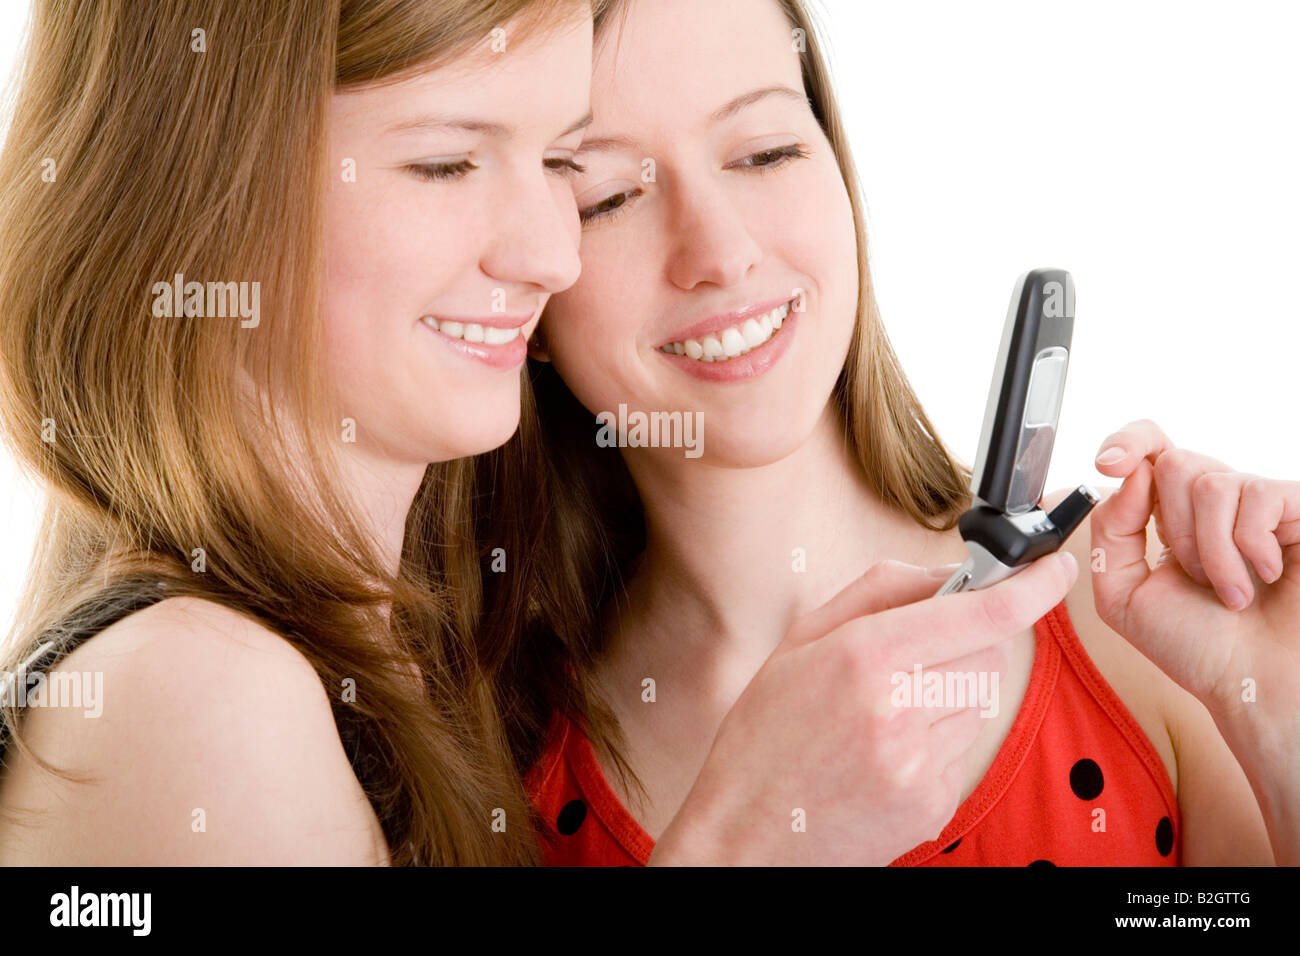 writing message sms mobile female friends teenagers fun happy smiling girls women young smiling people girl friends - Stock Image